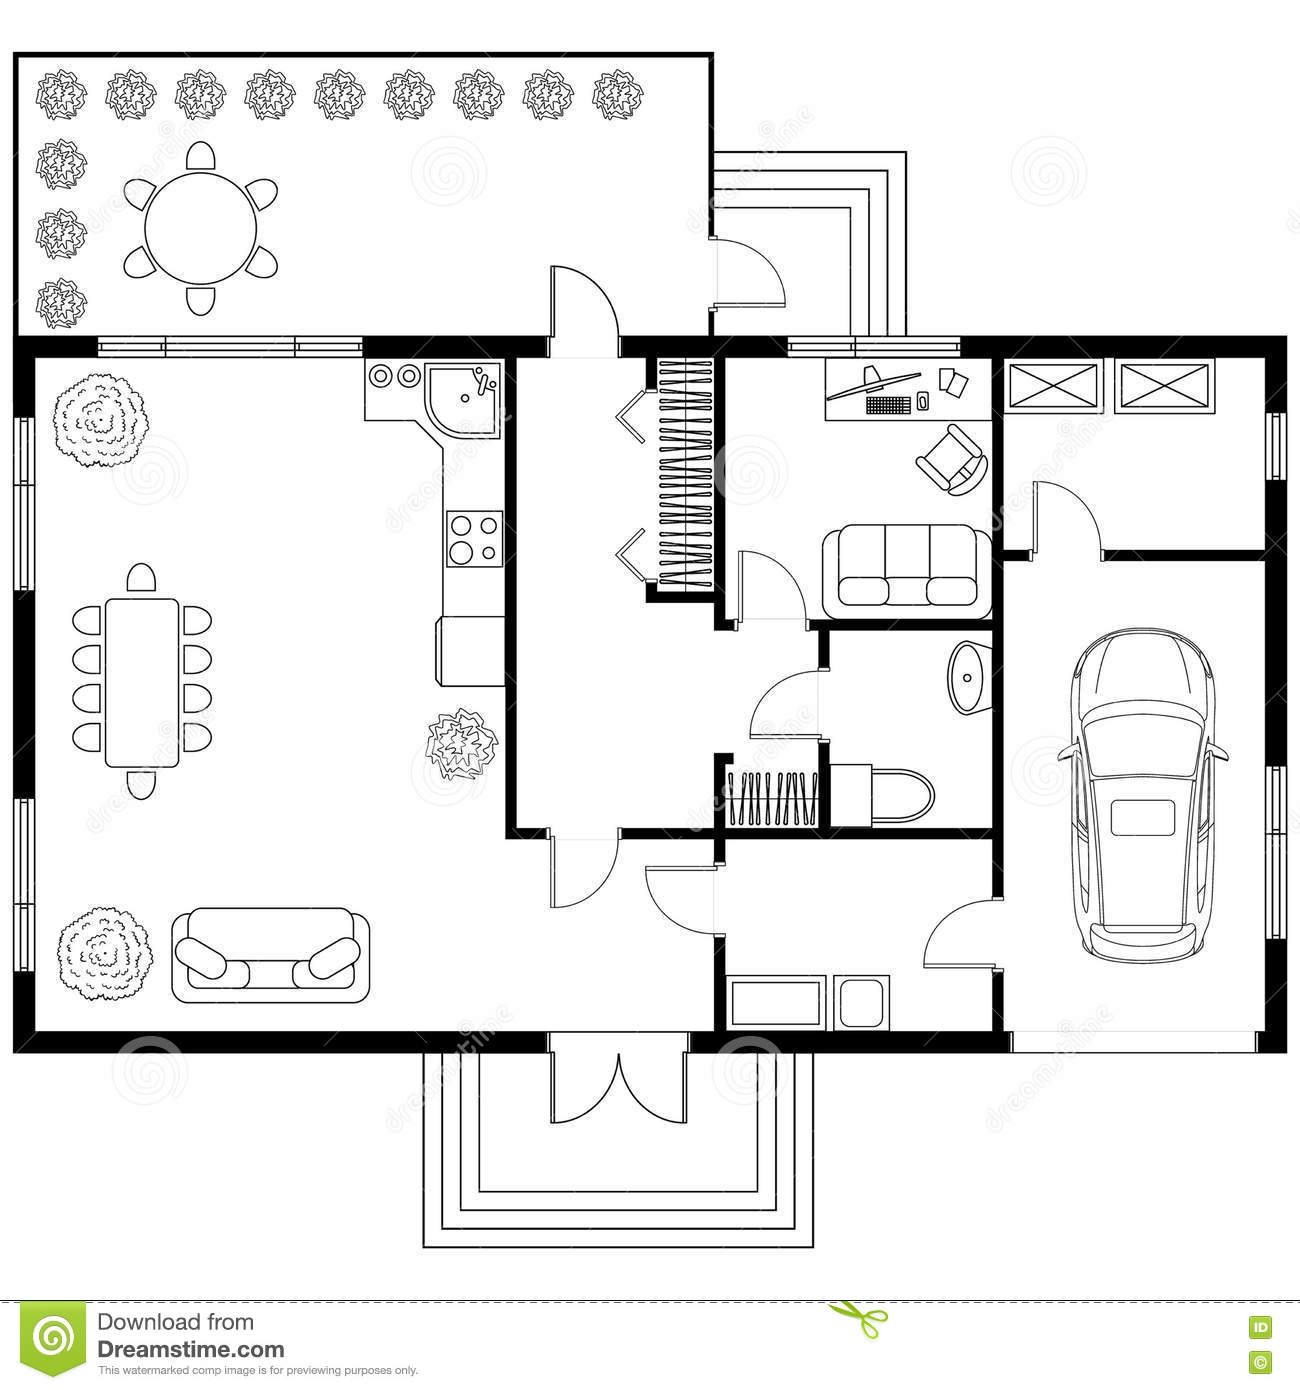 architectural plan of a house with garage stock vector image 81486582. Black Bedroom Furniture Sets. Home Design Ideas